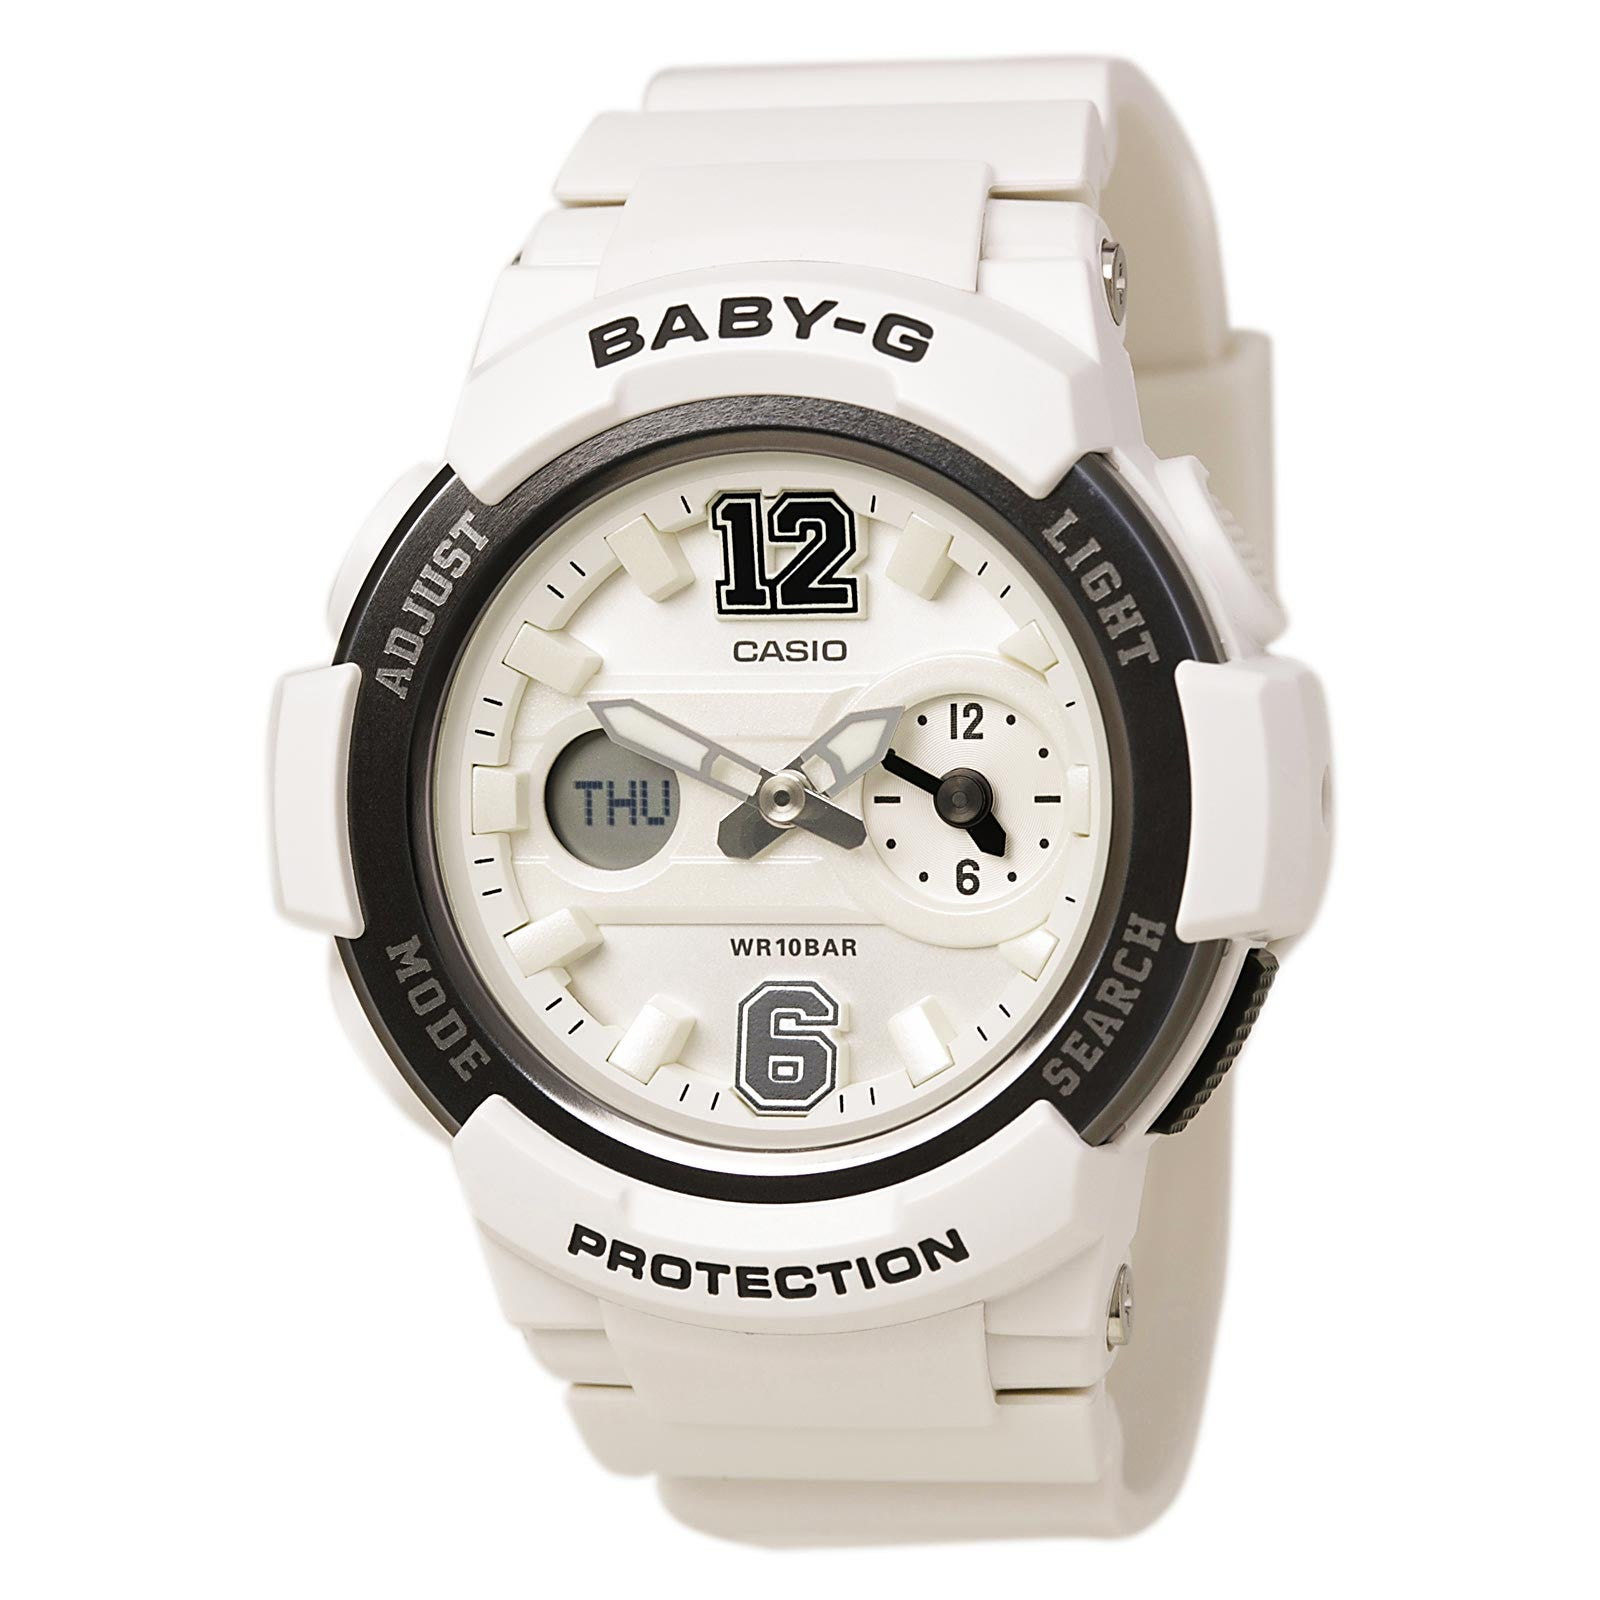 Casio BGA210-7B1 Women's Baby-G Sports Ana-Digi White Dial White Resin Strap Alarm Watch